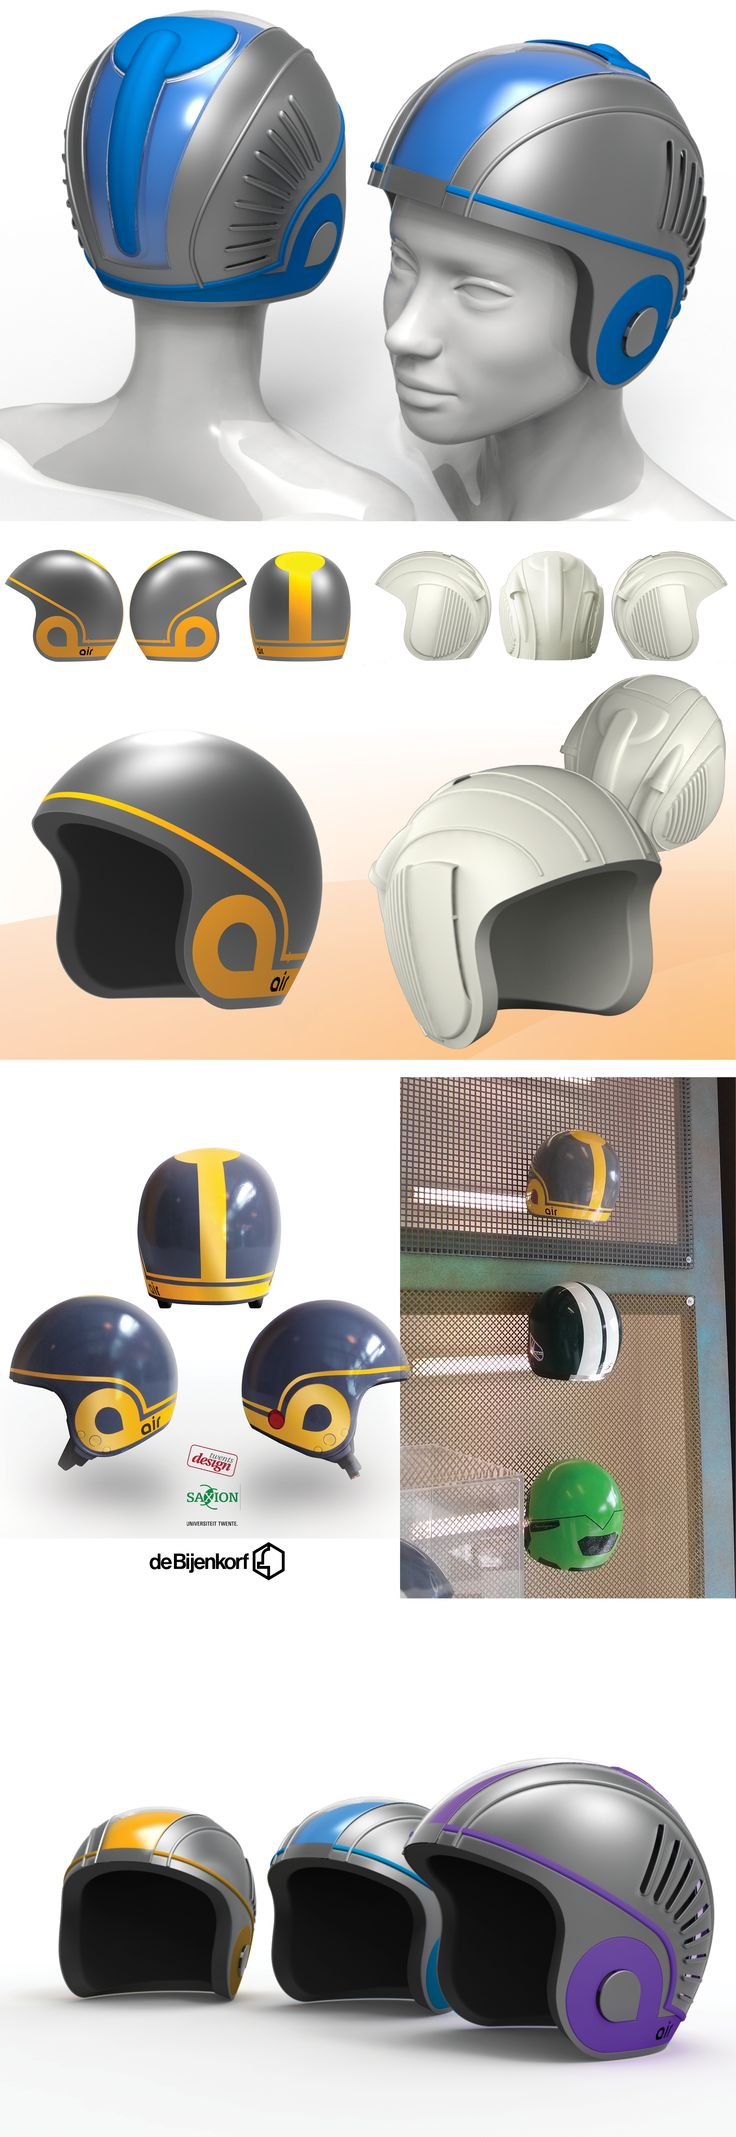 The Dyson Helmet. 2D and 3D design in collaboration with Karlo Finkers. Displayed at the 'Twente Design 2013' exposition at the Bijenkorf, Enschede.